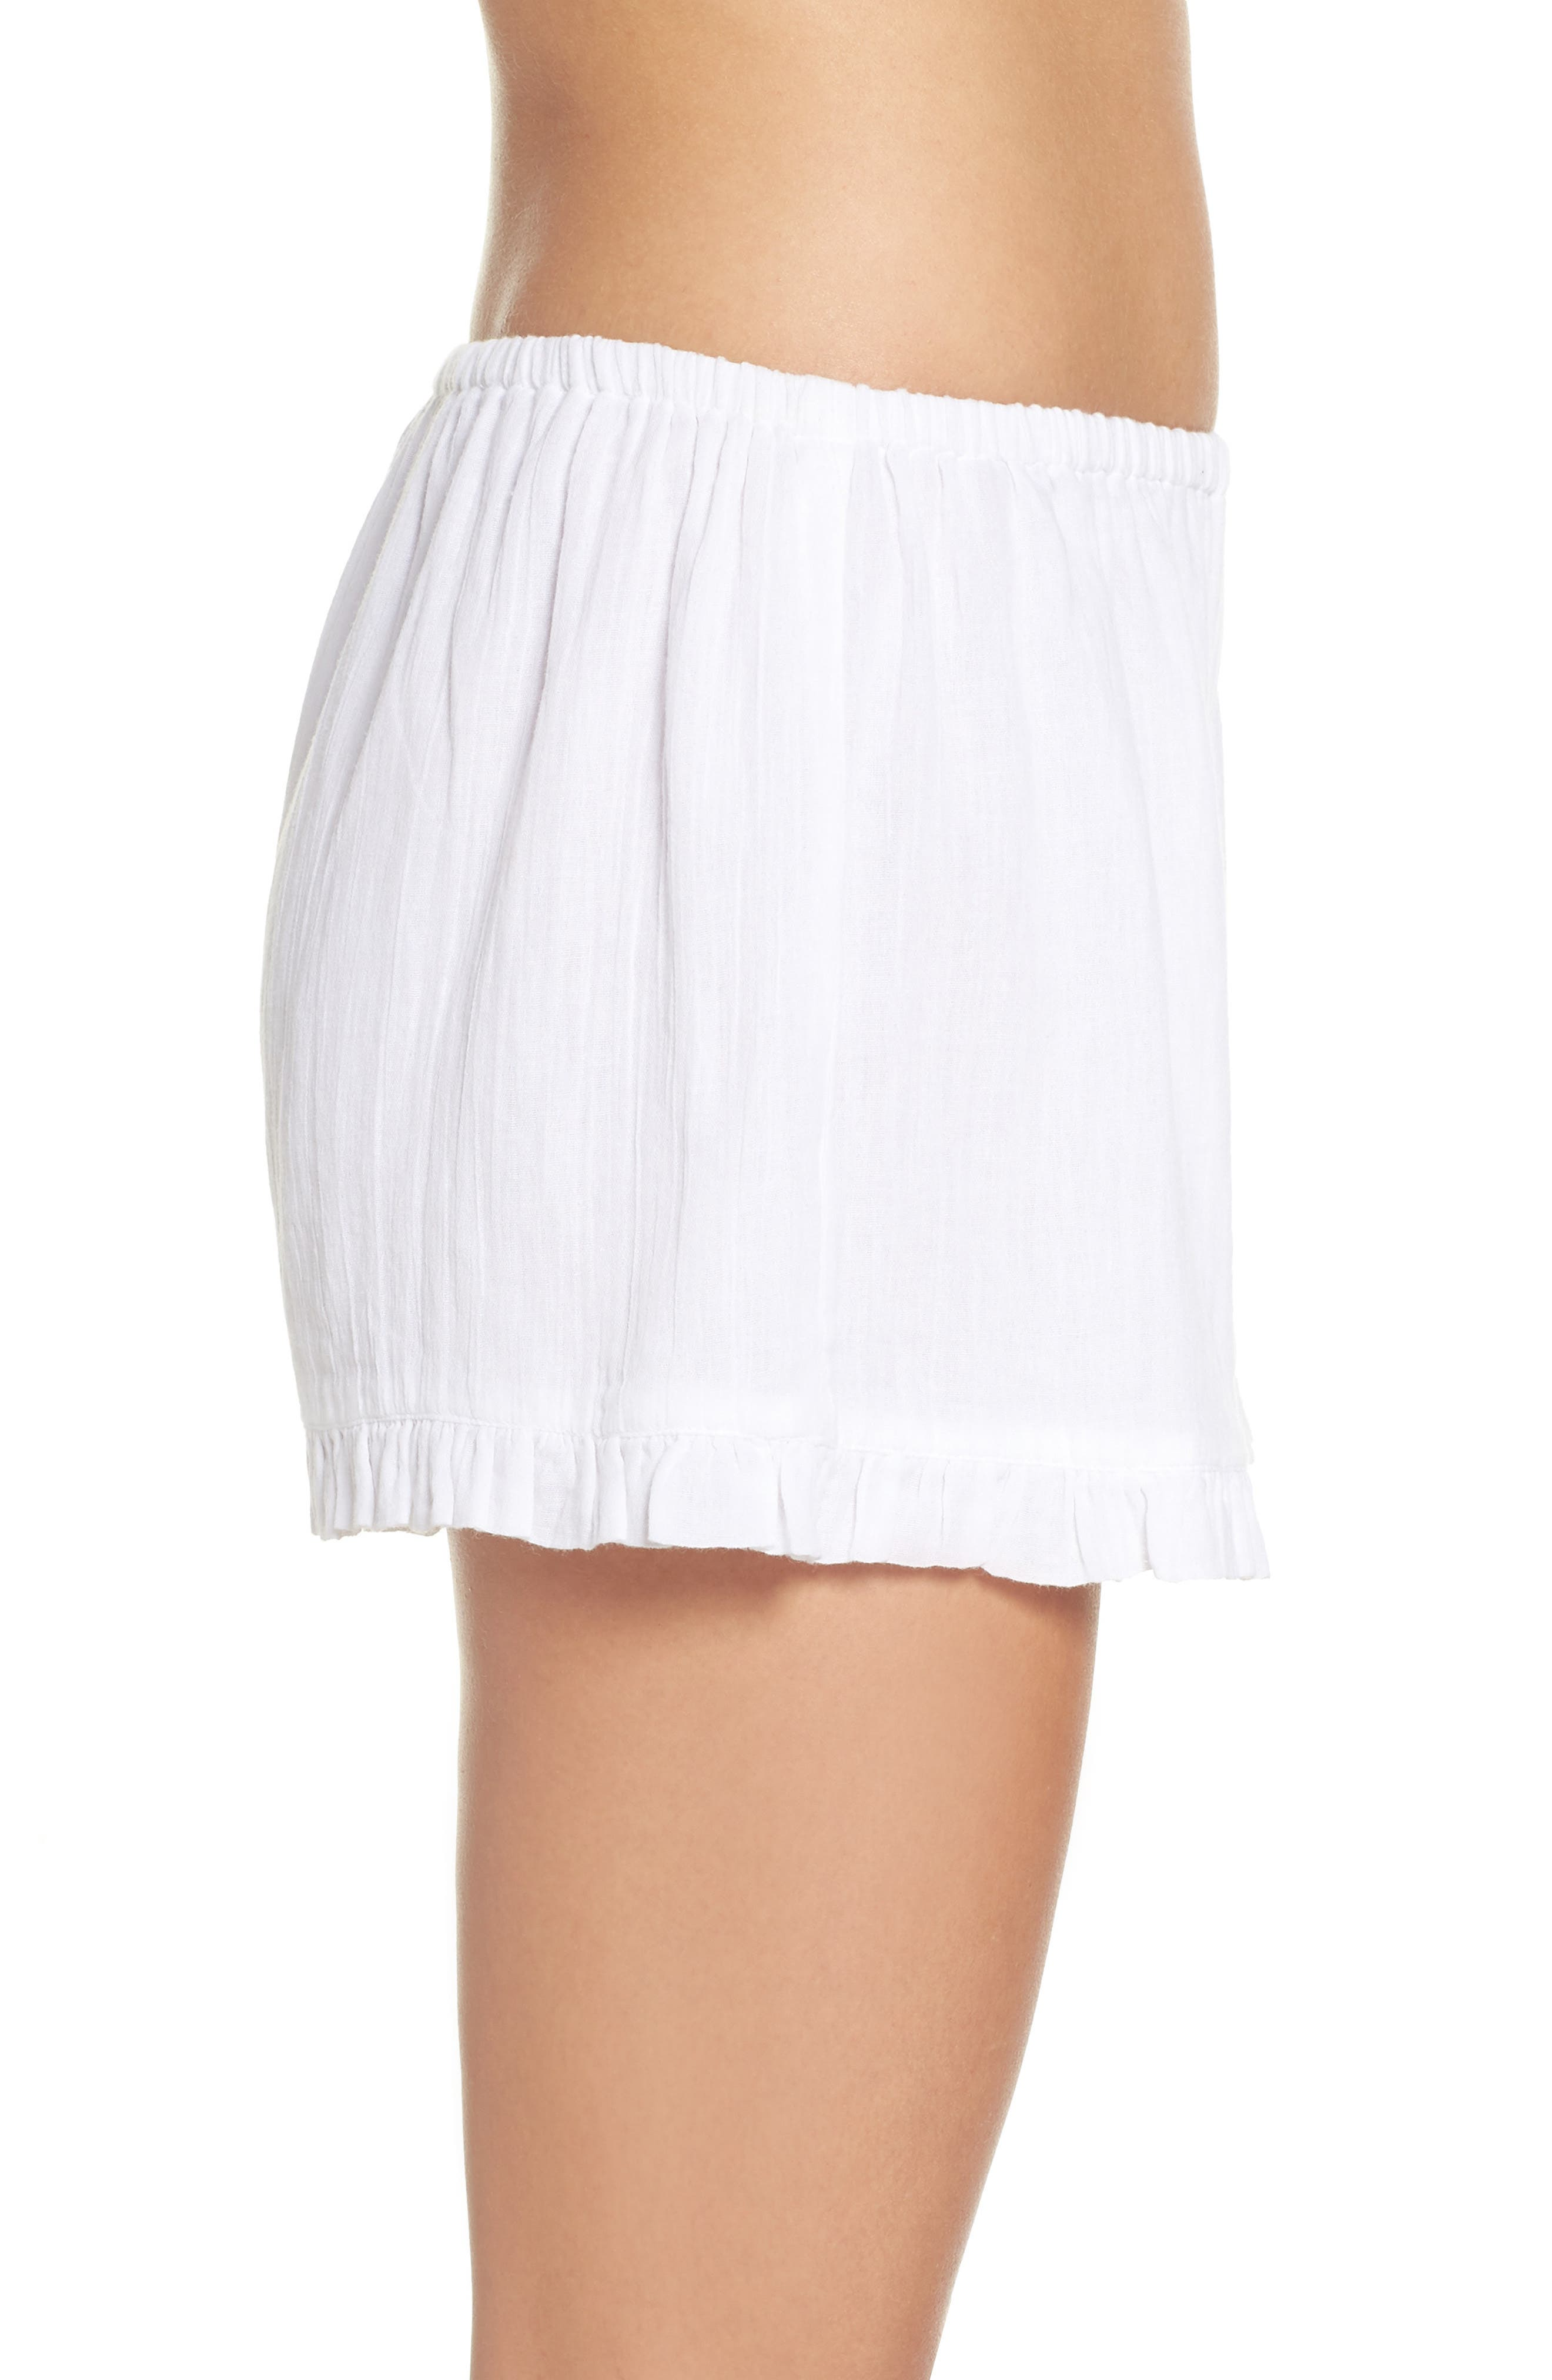 Cambria Ruffle Sleep Shorts,                             Alternate thumbnail 3, color,                             White